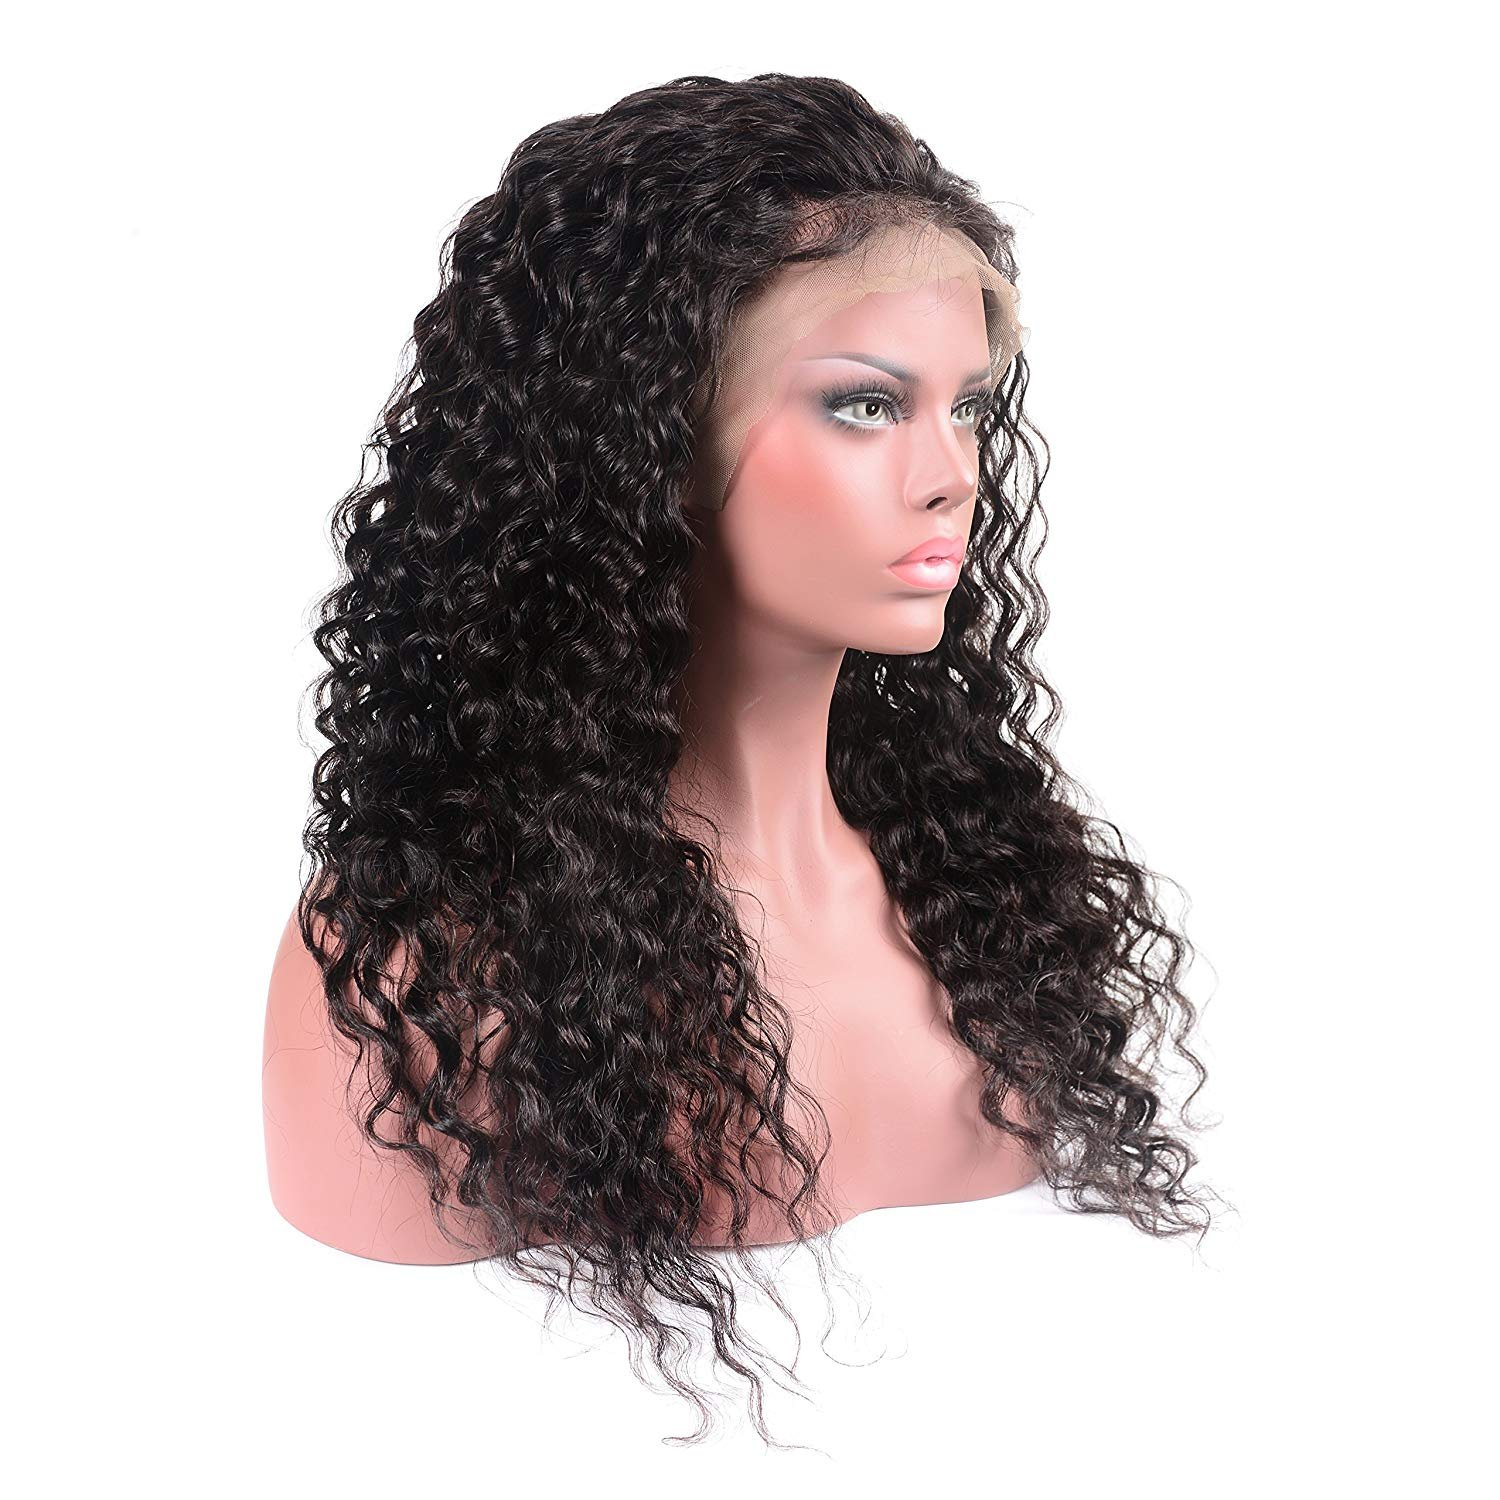 Younsolo Brazilian Water Wave Lace Front Wigs with Baby Hair for Black Women 130% Density Virgin Remy Human Hair Lace Front Wigs 26 inch by Younsolo (Image #2)